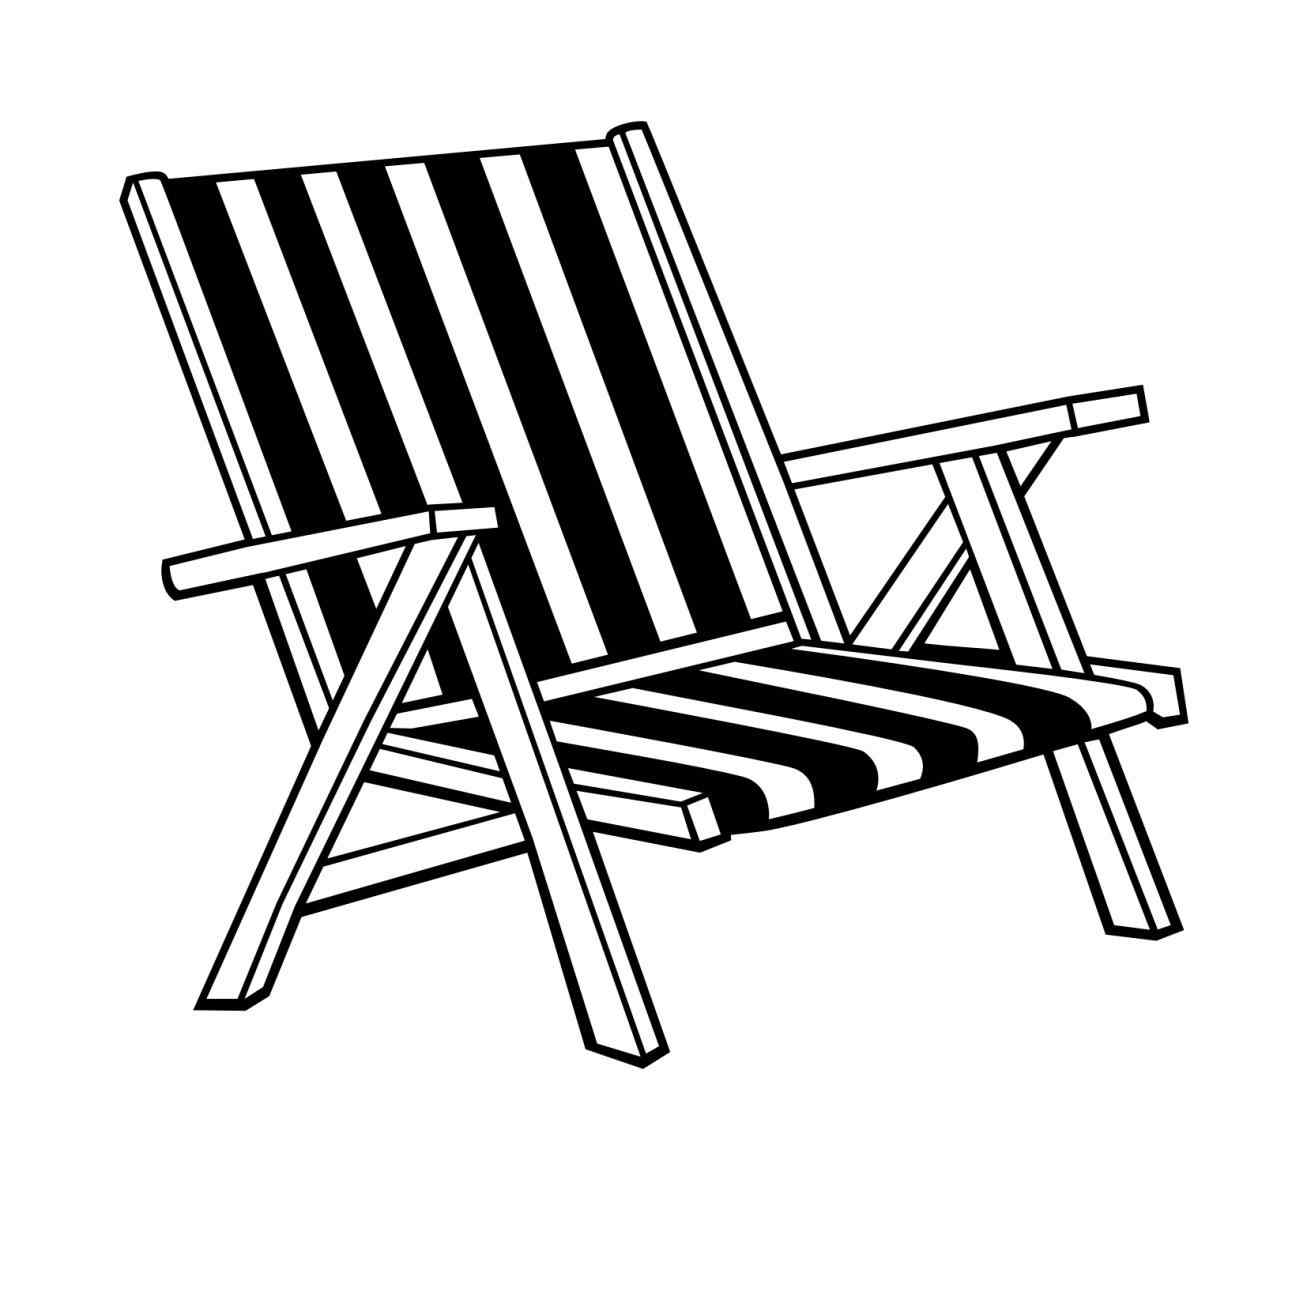 drawing chair rocking chair drawing free download on clipartmag chair drawing